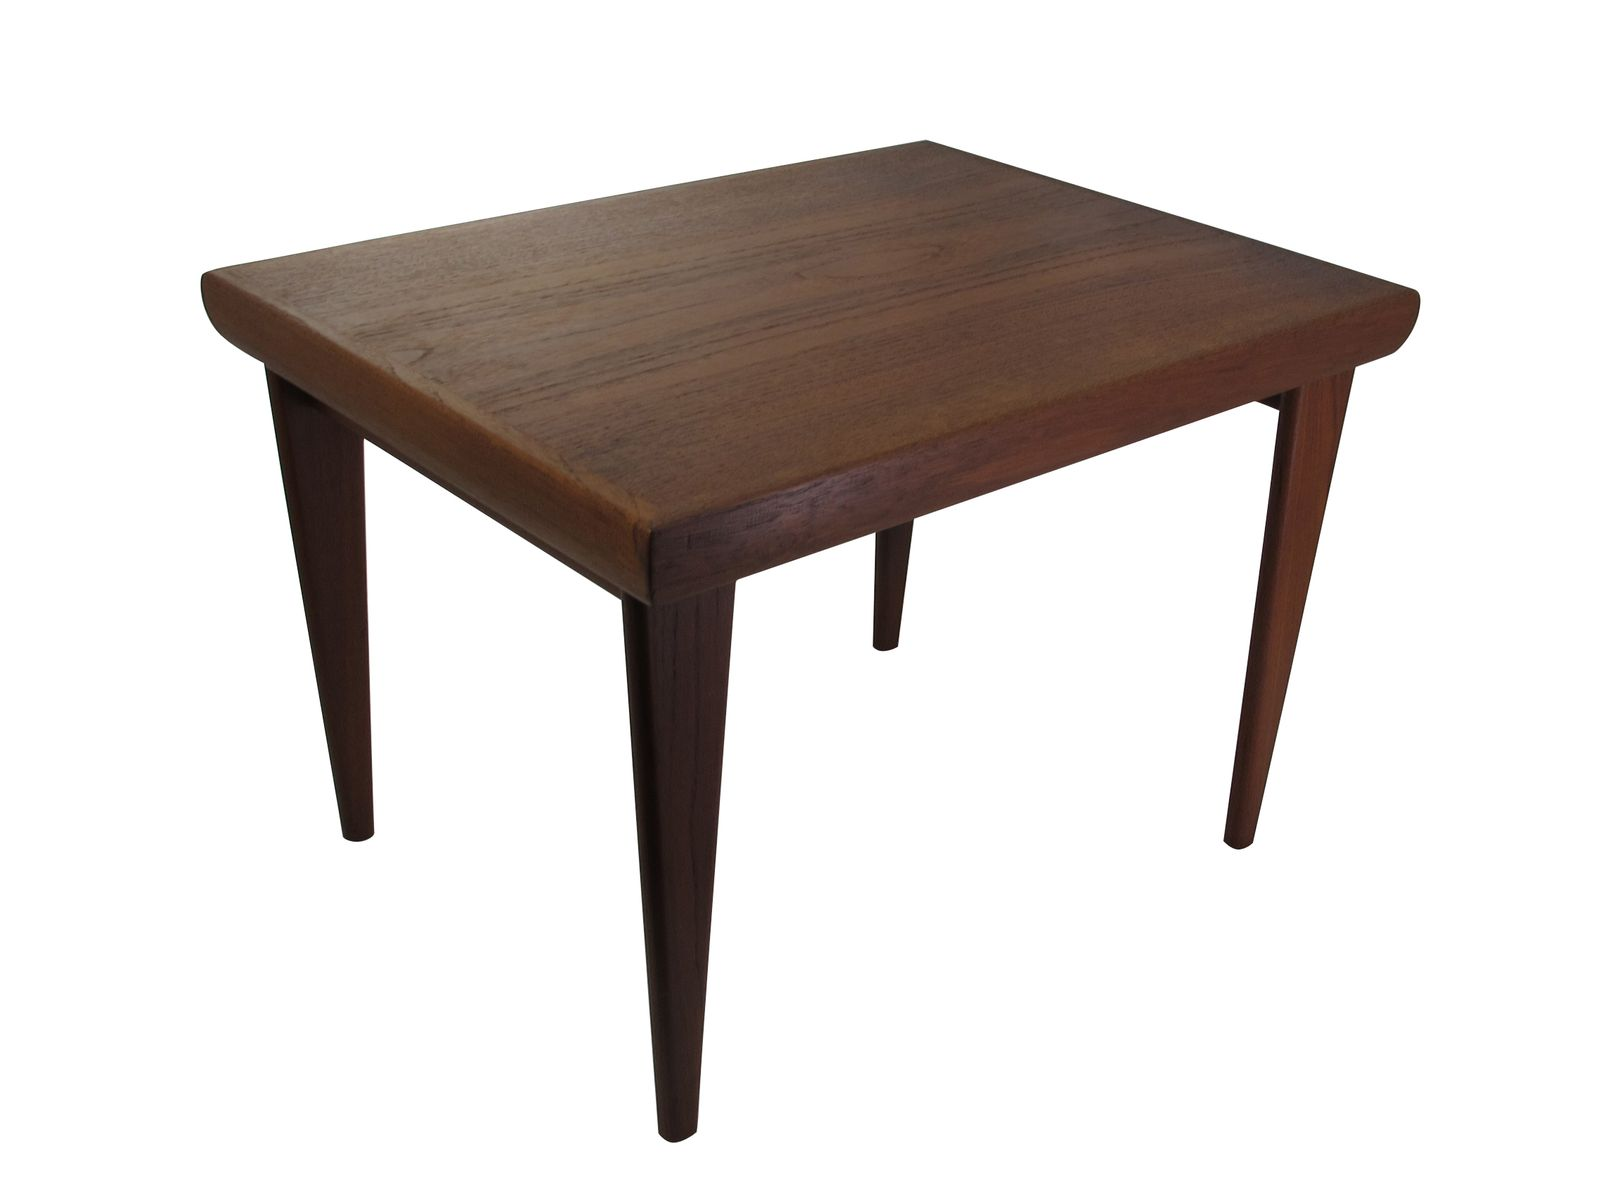 Solid Teak Folding Coffee Table For Sale At Pamono: solid teak coffee table